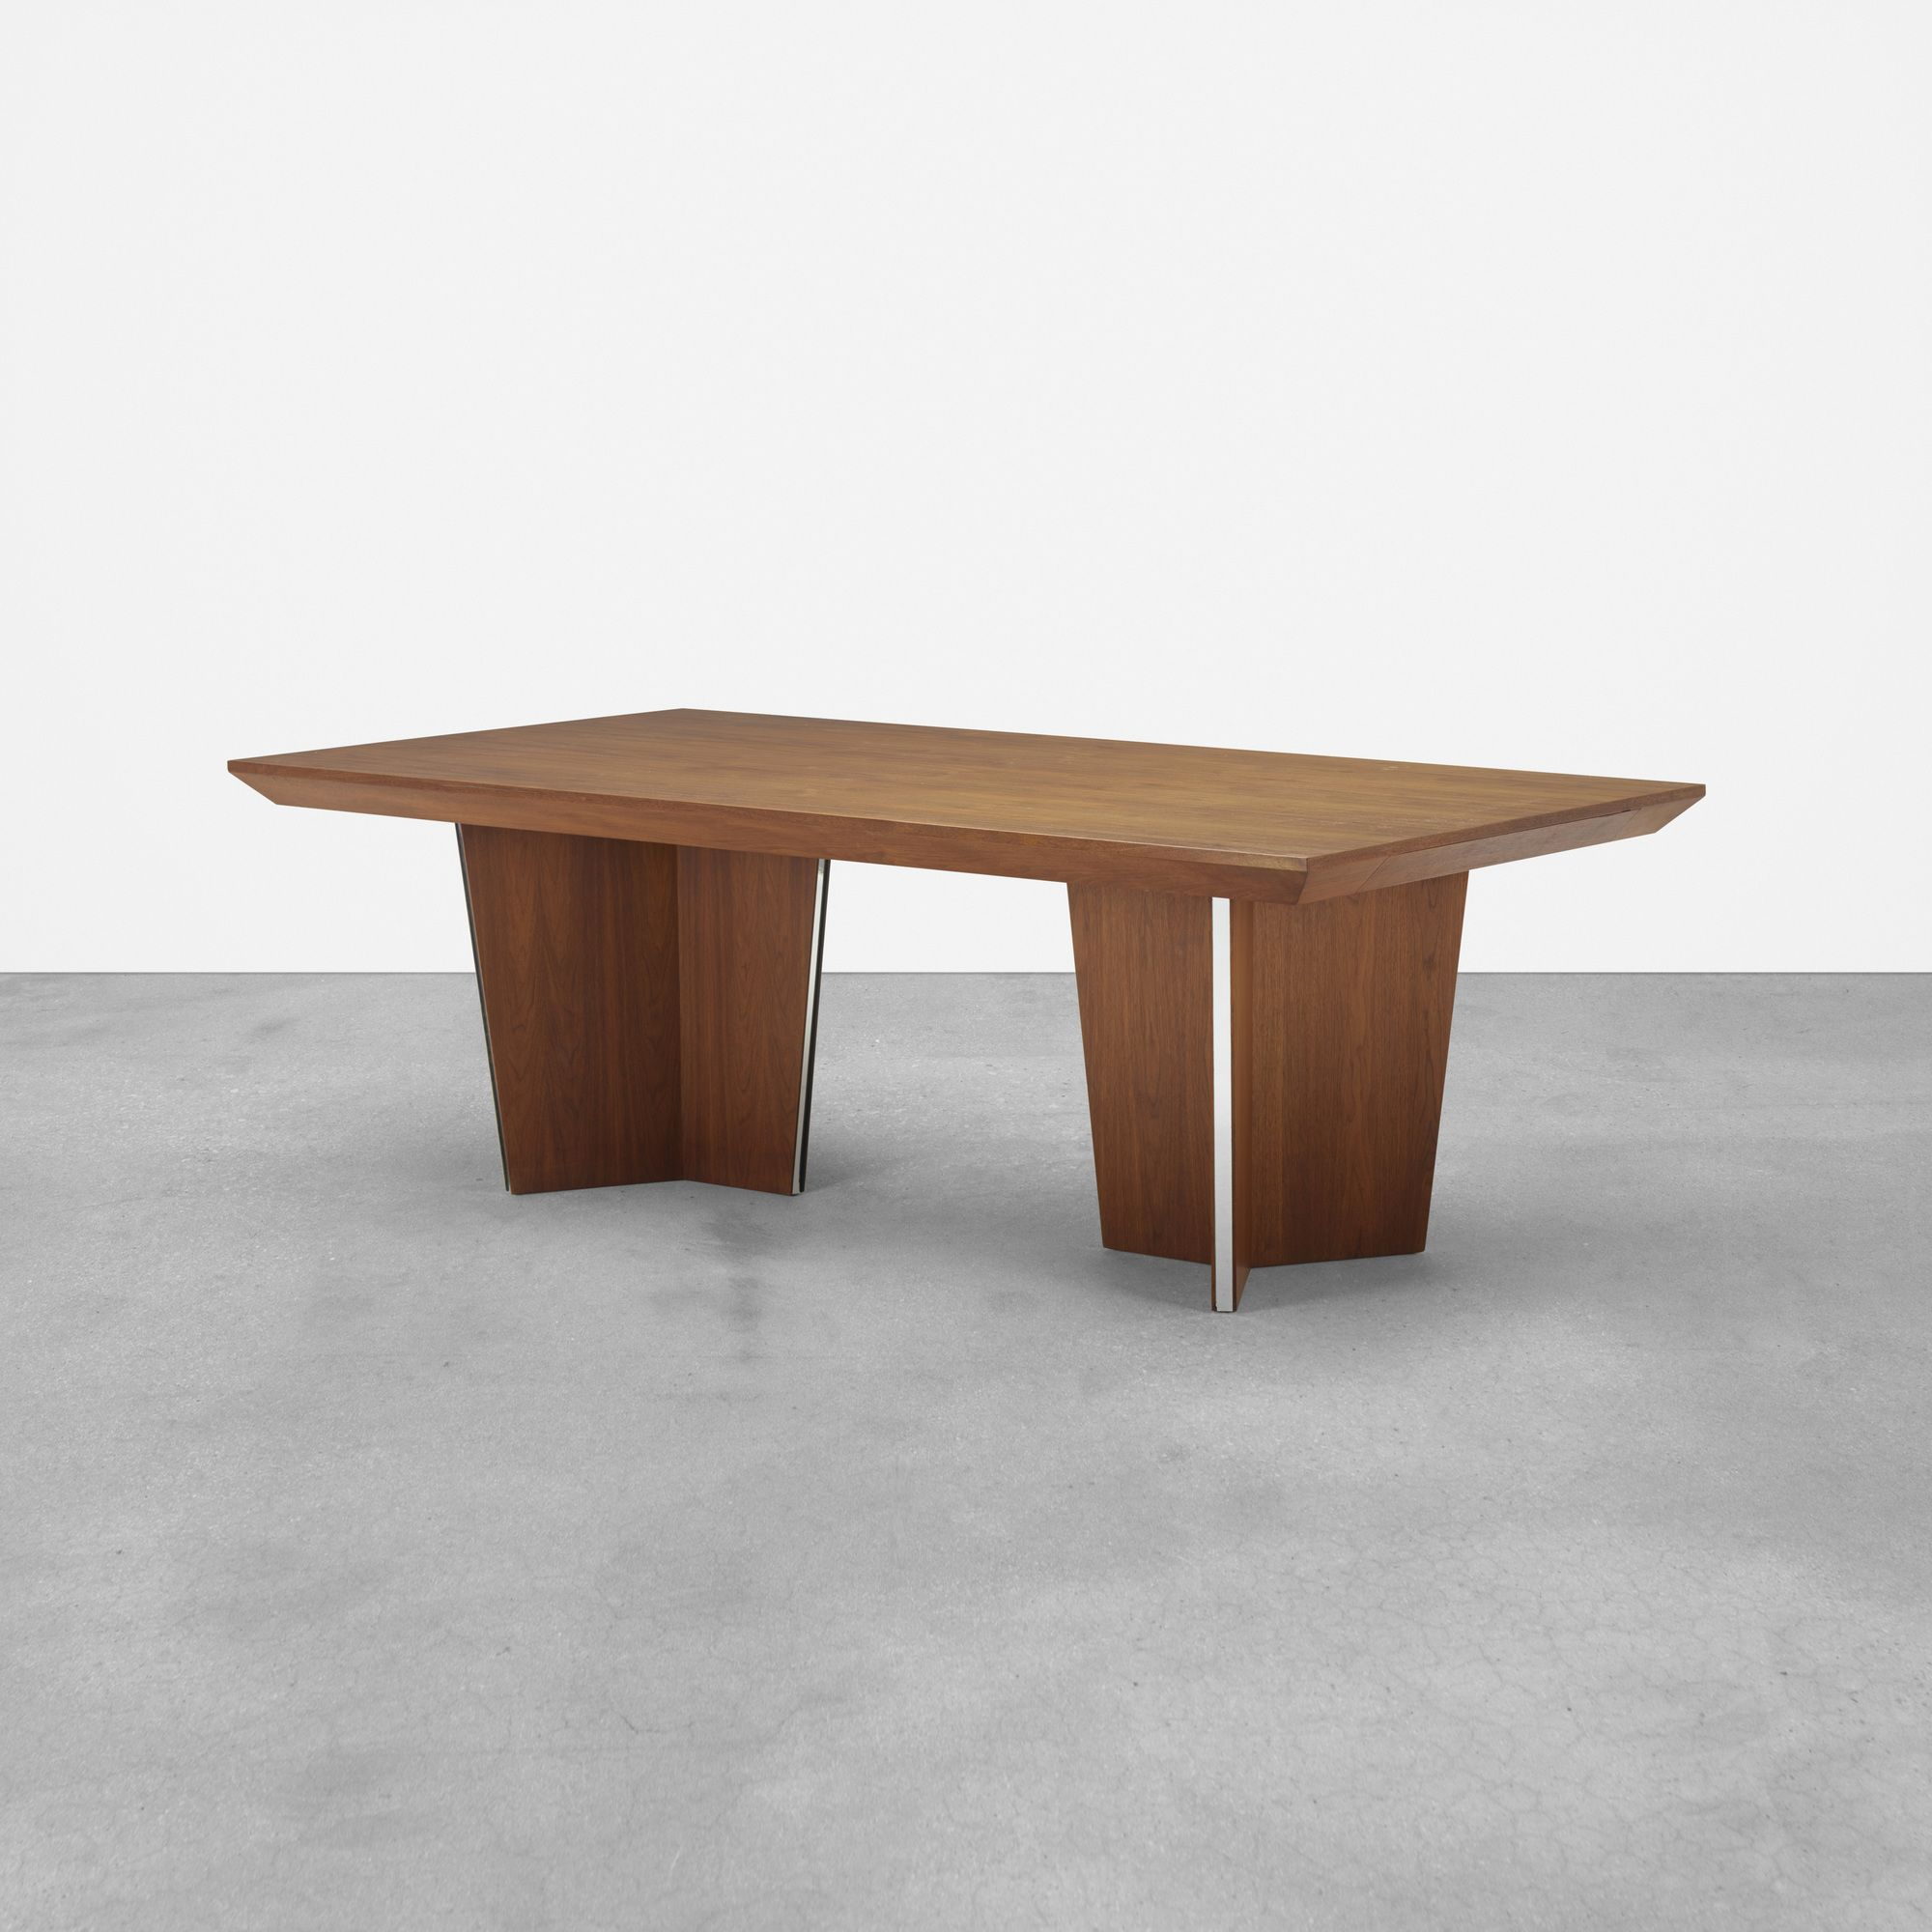 Lot 428 Vladimir Kagan Dining Table C 1958 Walnut Stainless